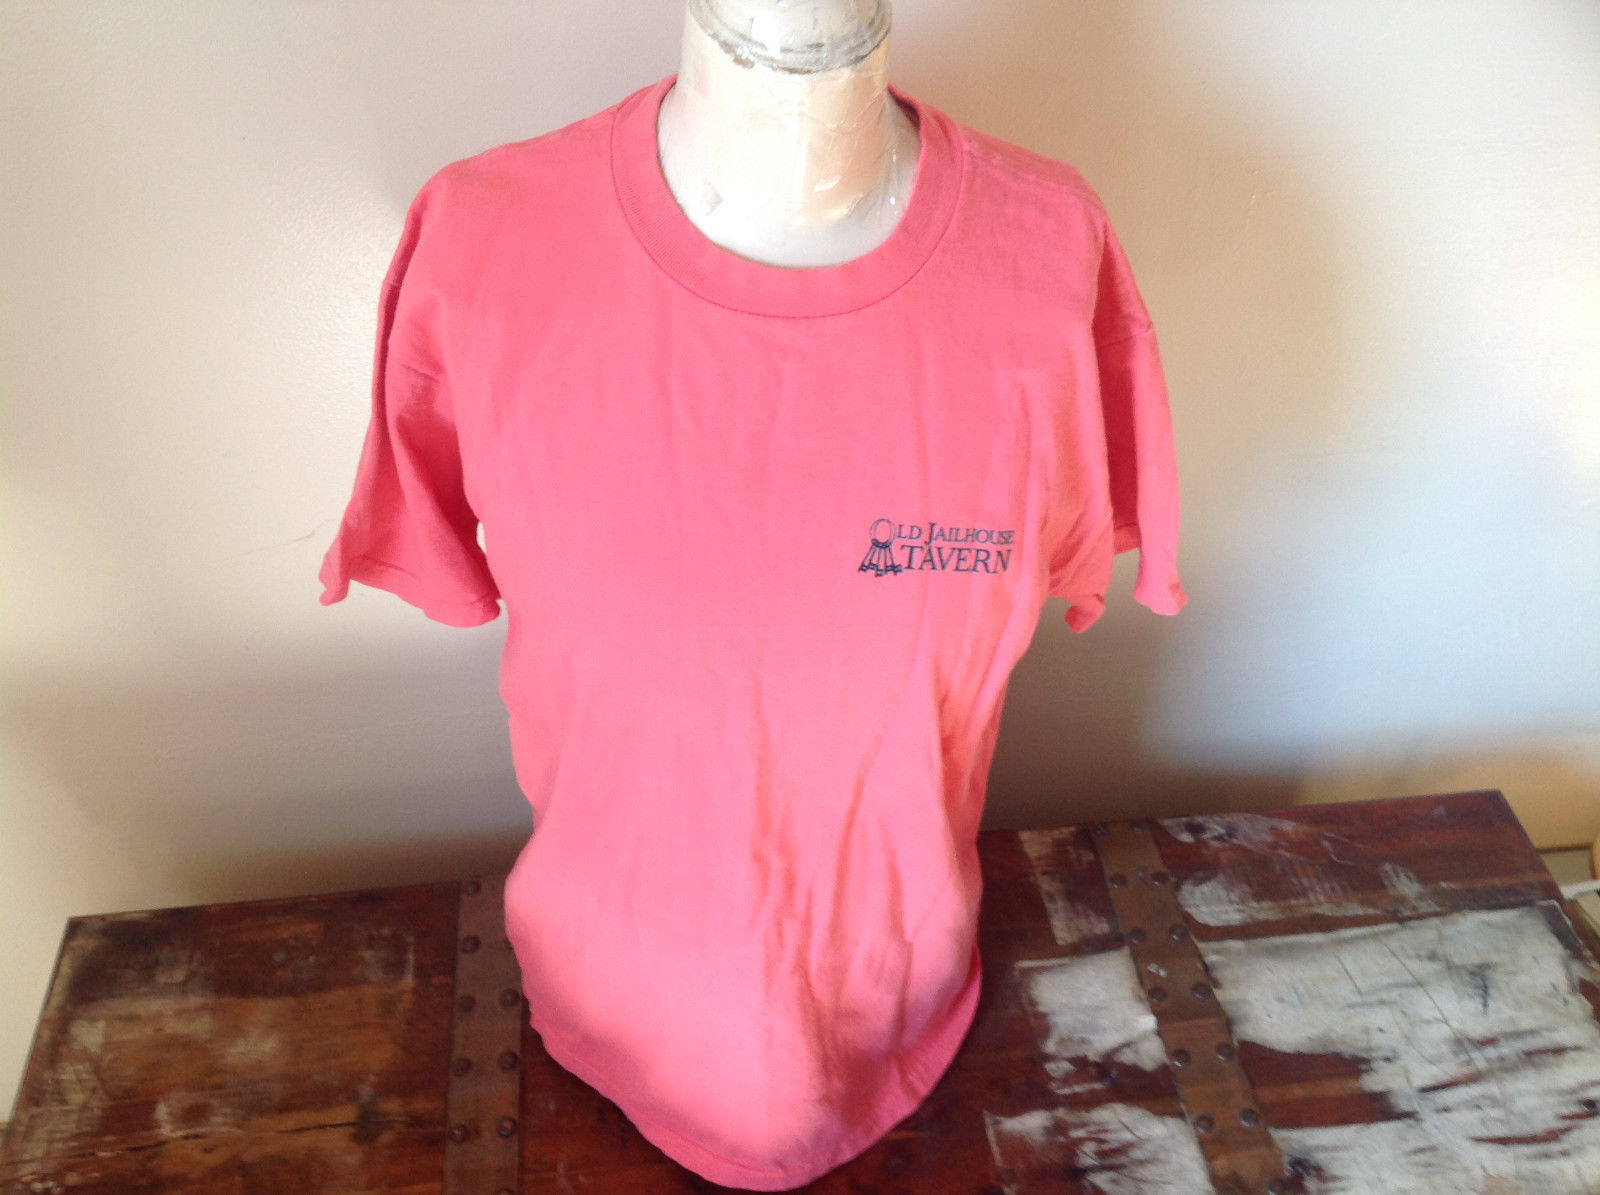 Pink Graphic T-Shirt Preshrunk Old Jailhouse Tavern Orleans Cape Cod Size Medium